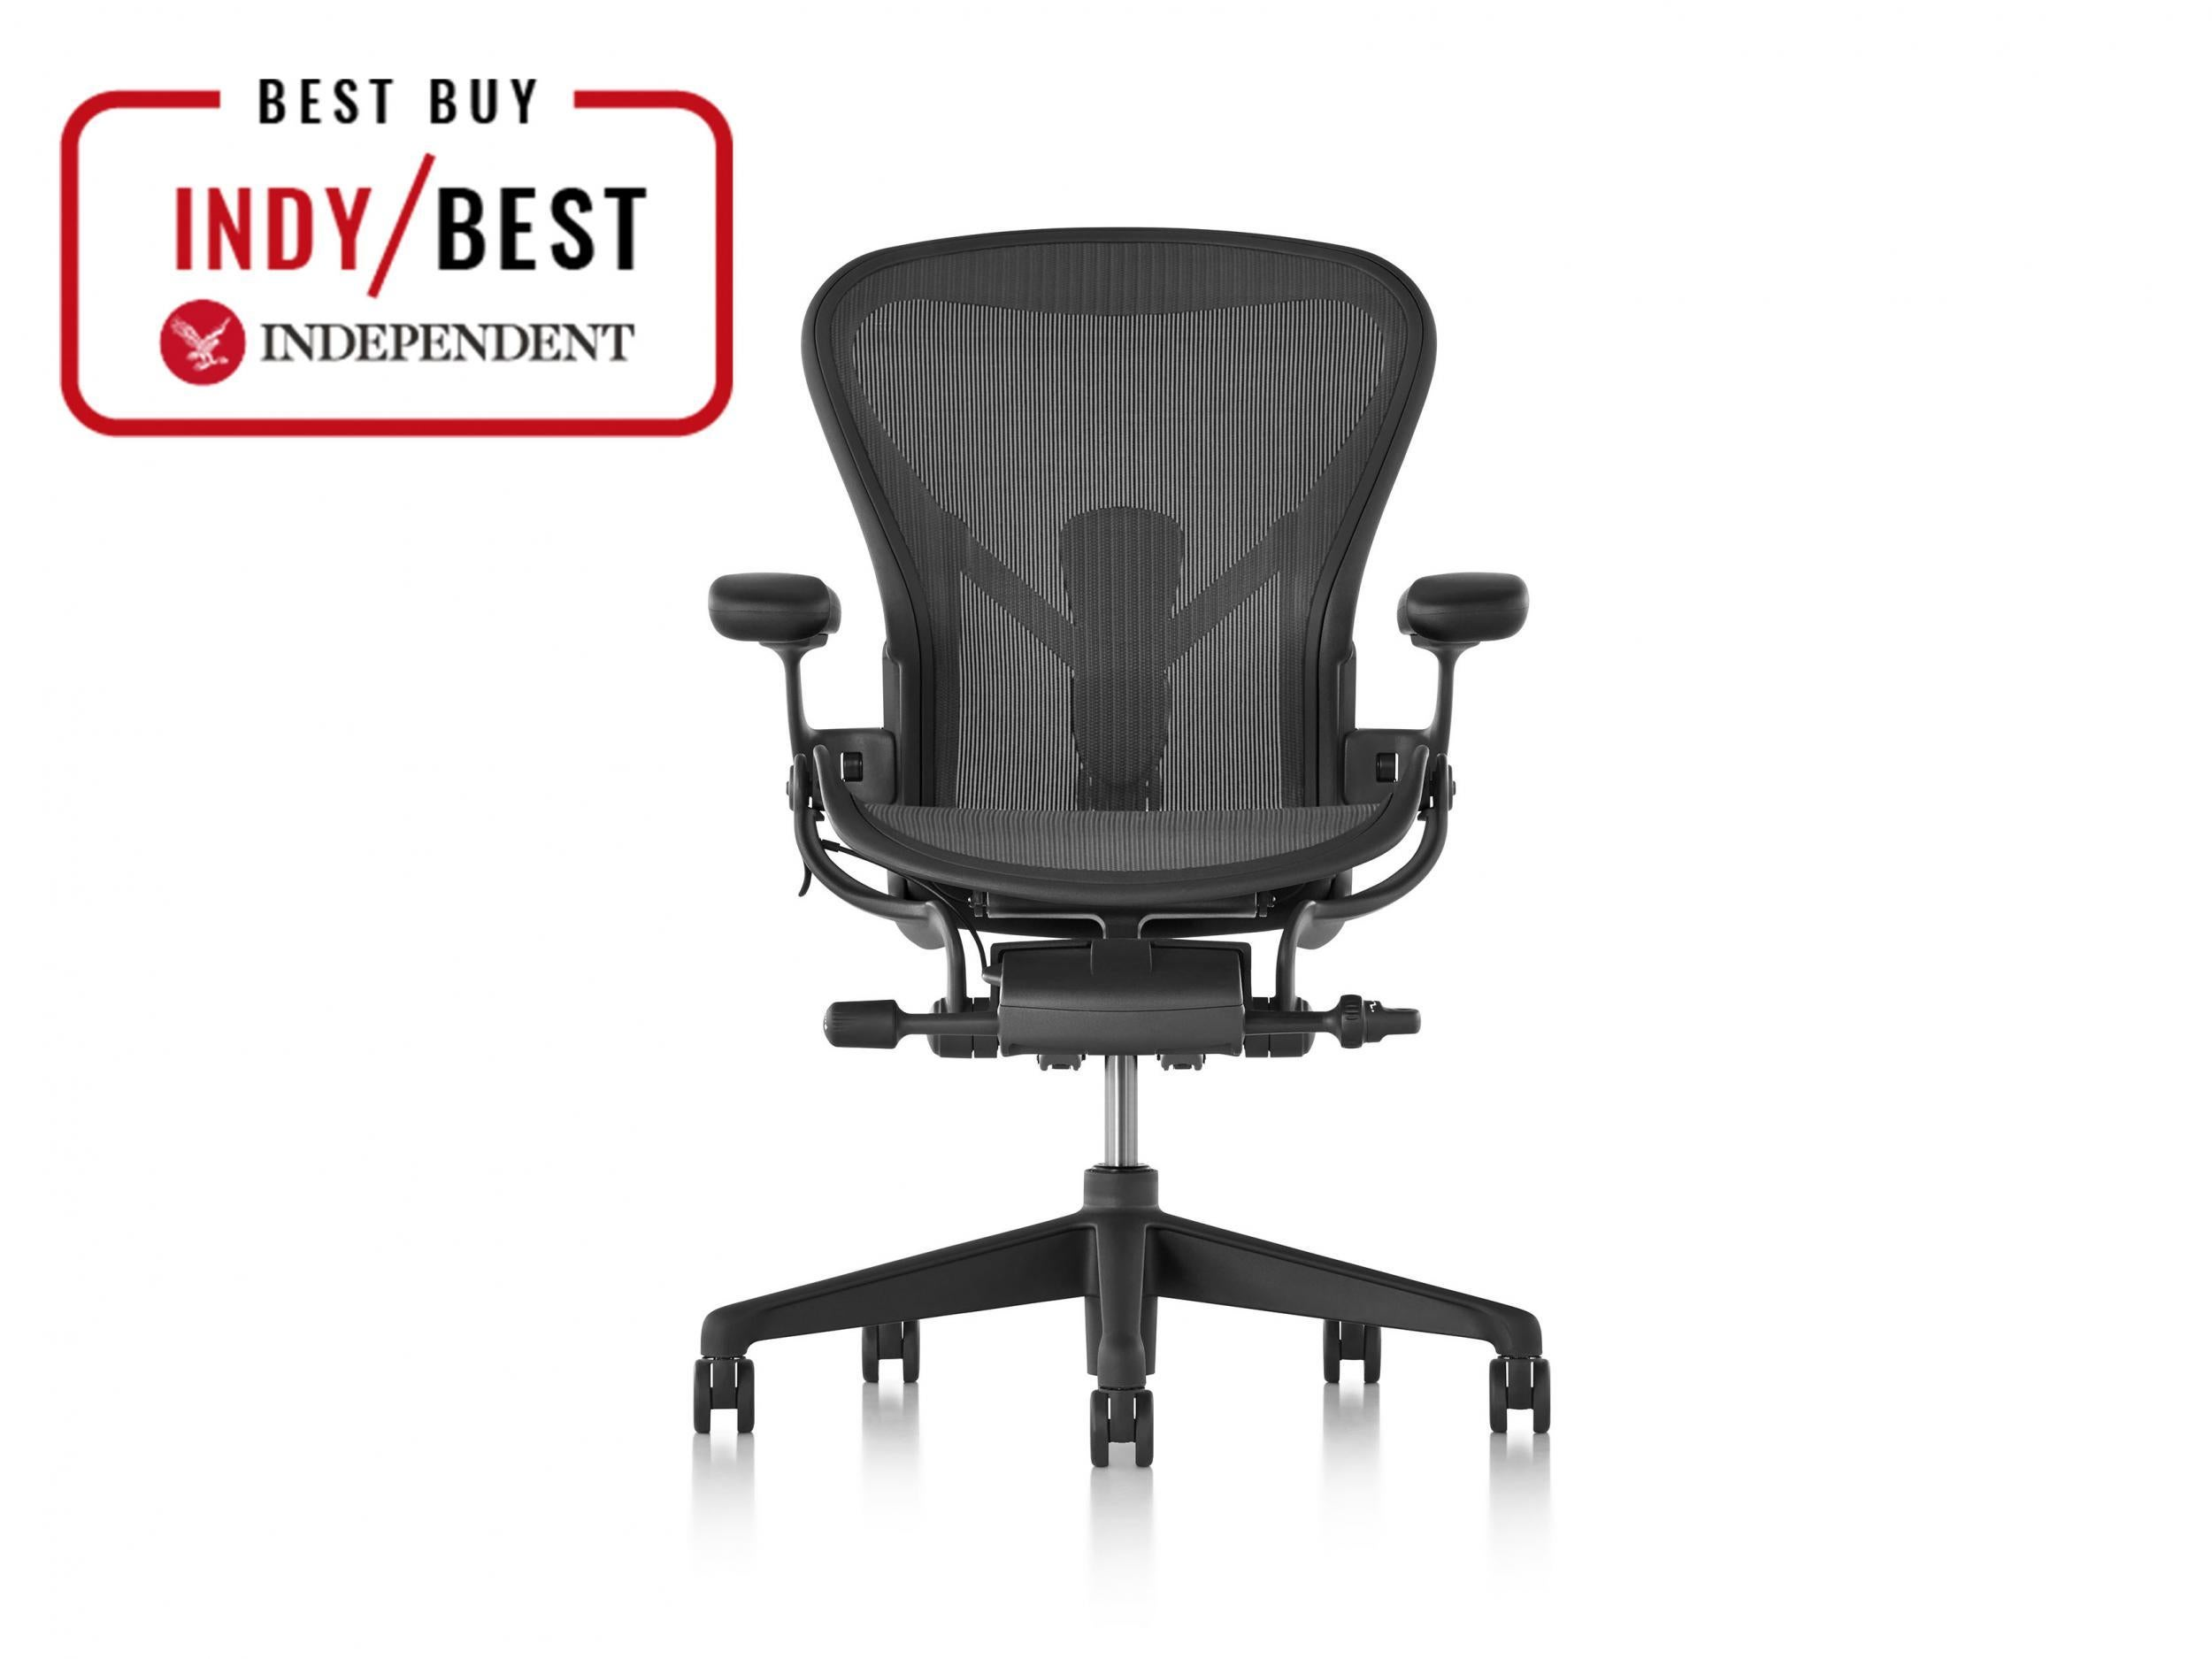 Astonishing 8 Best Ergonomic Office Chairs The Independent Pabps2019 Chair Design Images Pabps2019Com